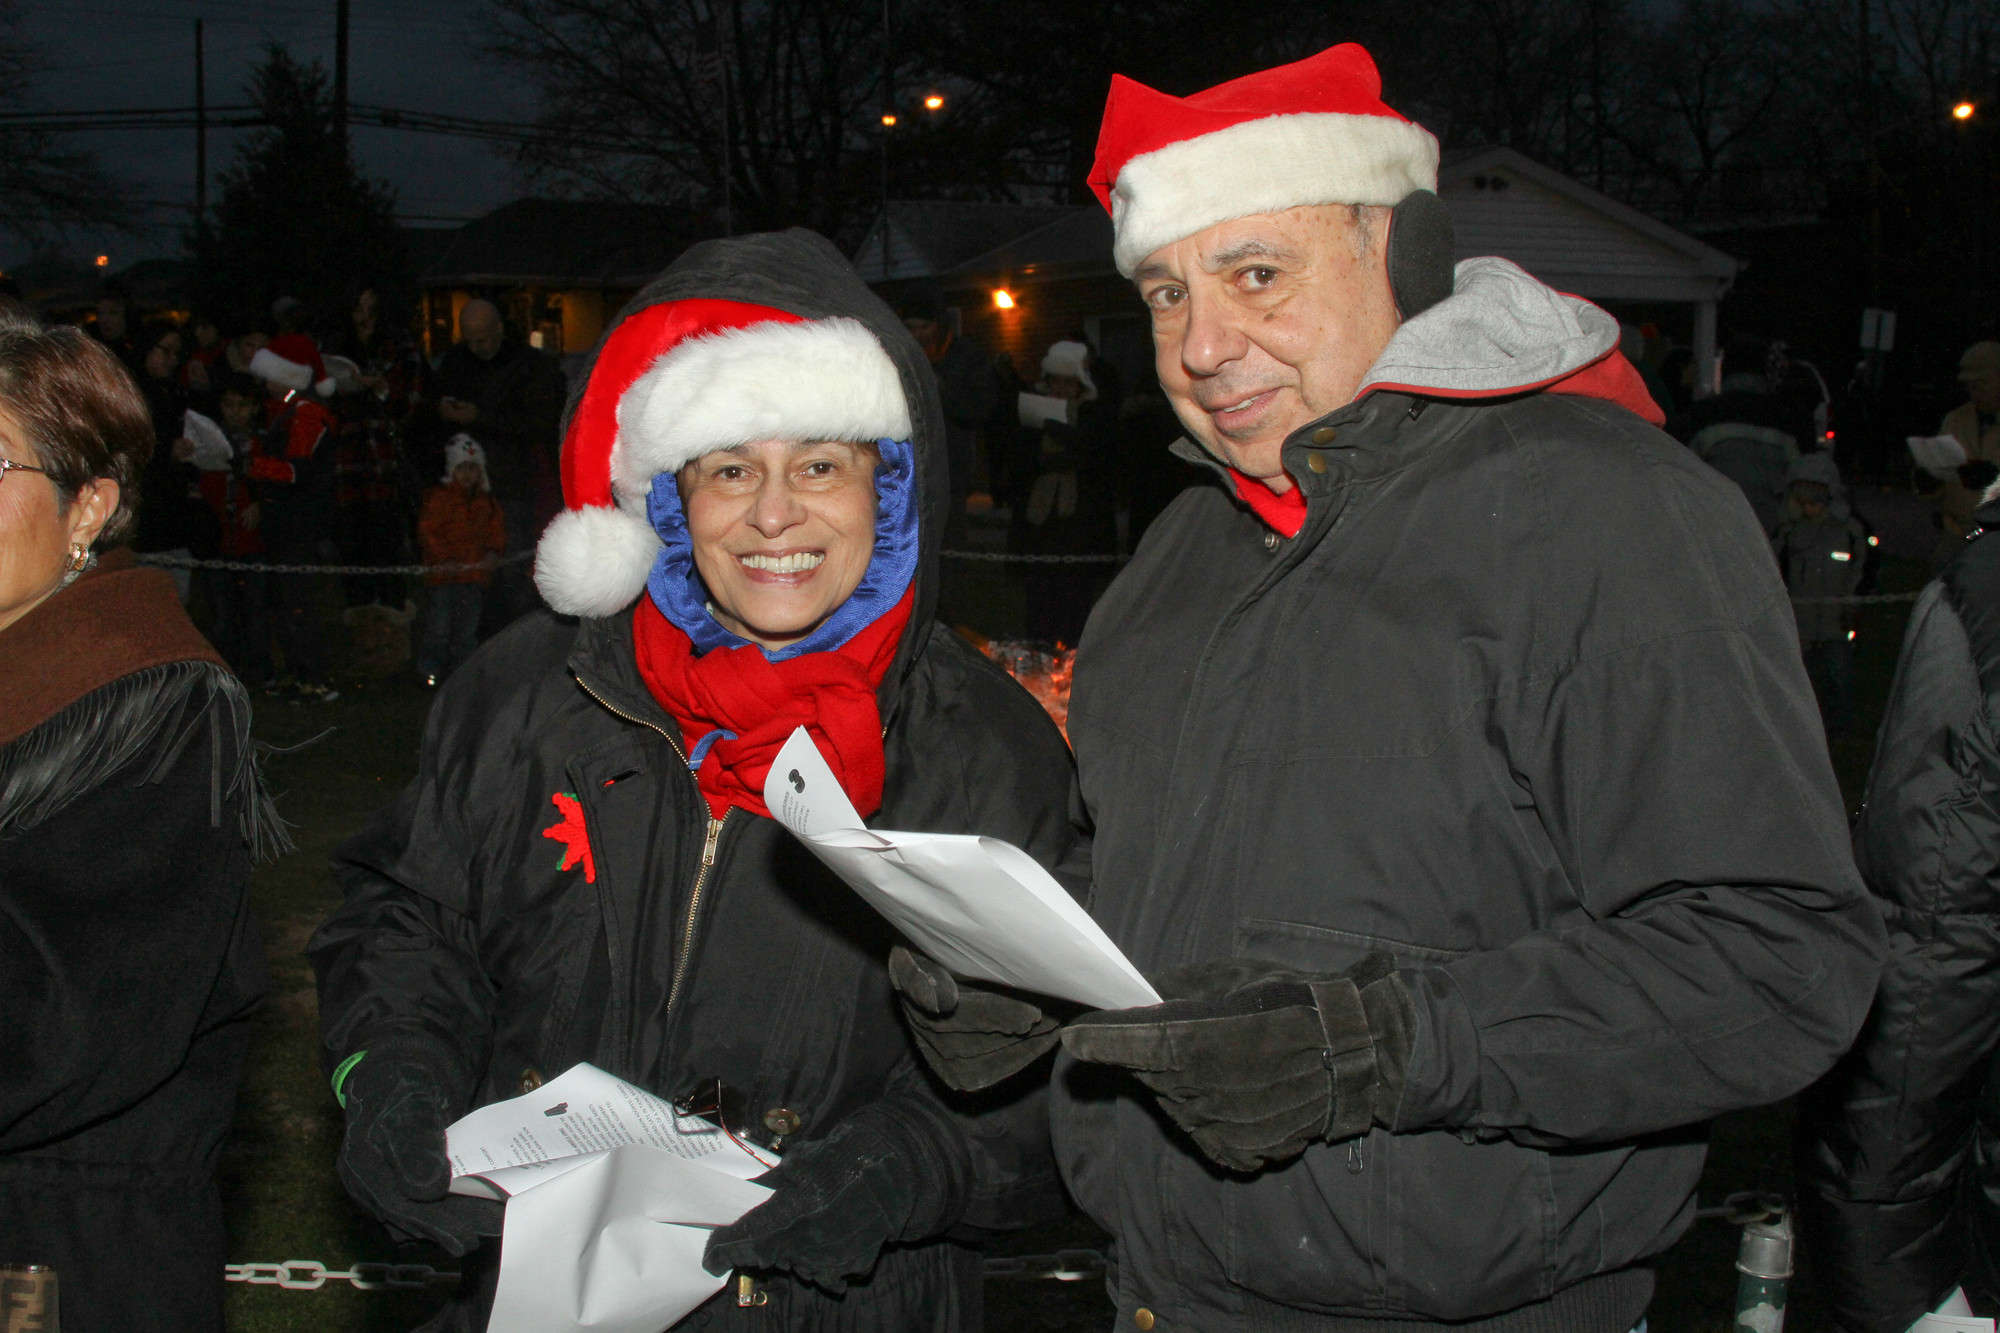 Cedarhurst's Christmas celebration in the park brought family and friends together. Gloria and Joseph Latona took part in caroling.